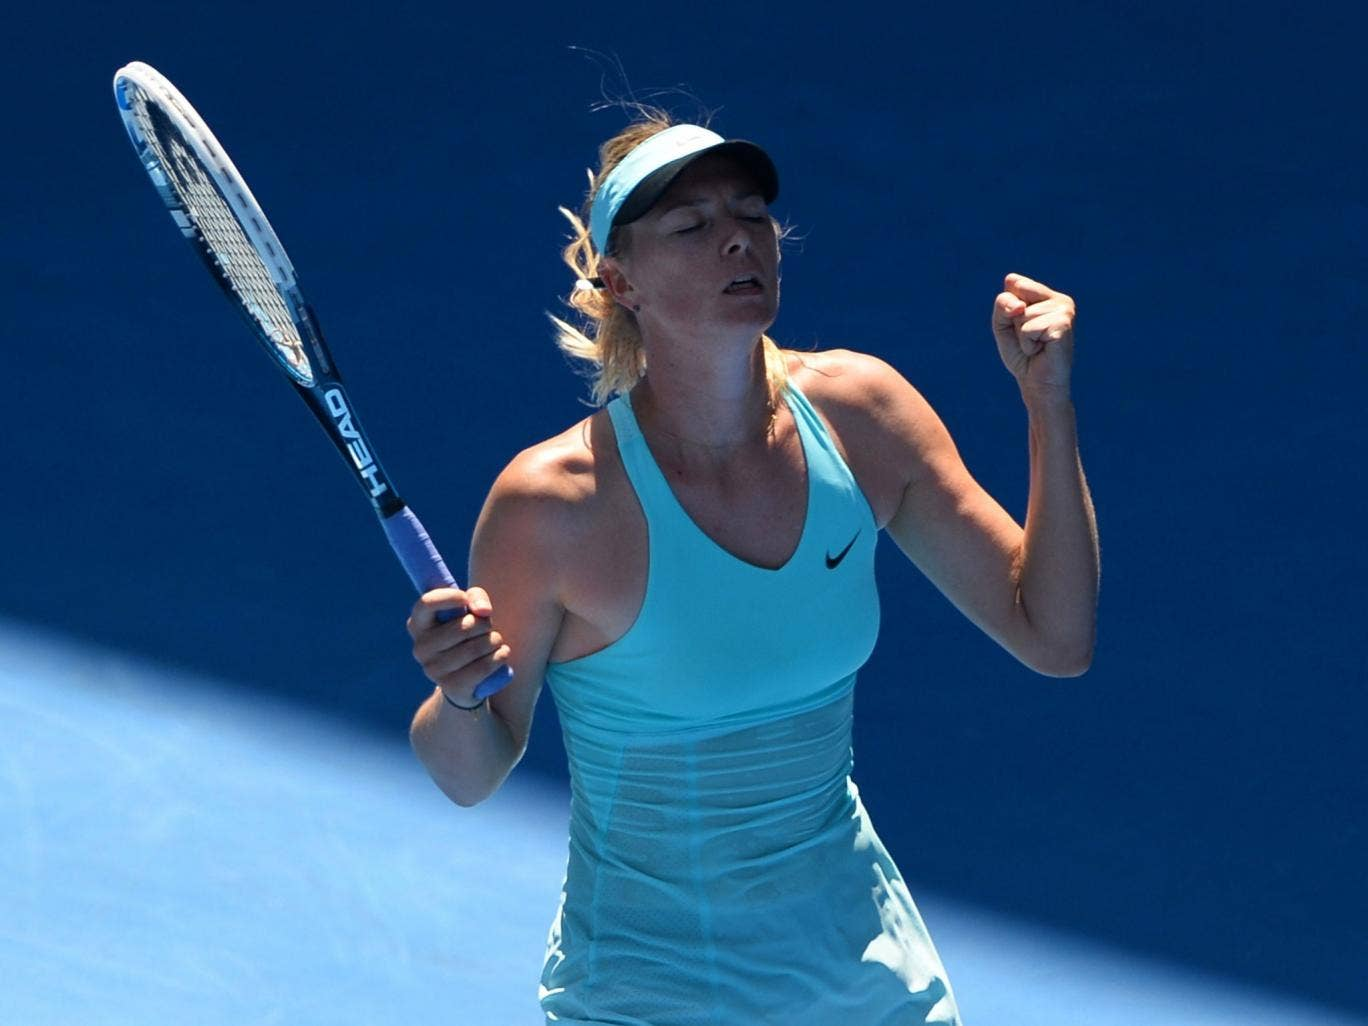 Maria Sharapova celebrates her victory over Karin Knapp in the Australian Open second round